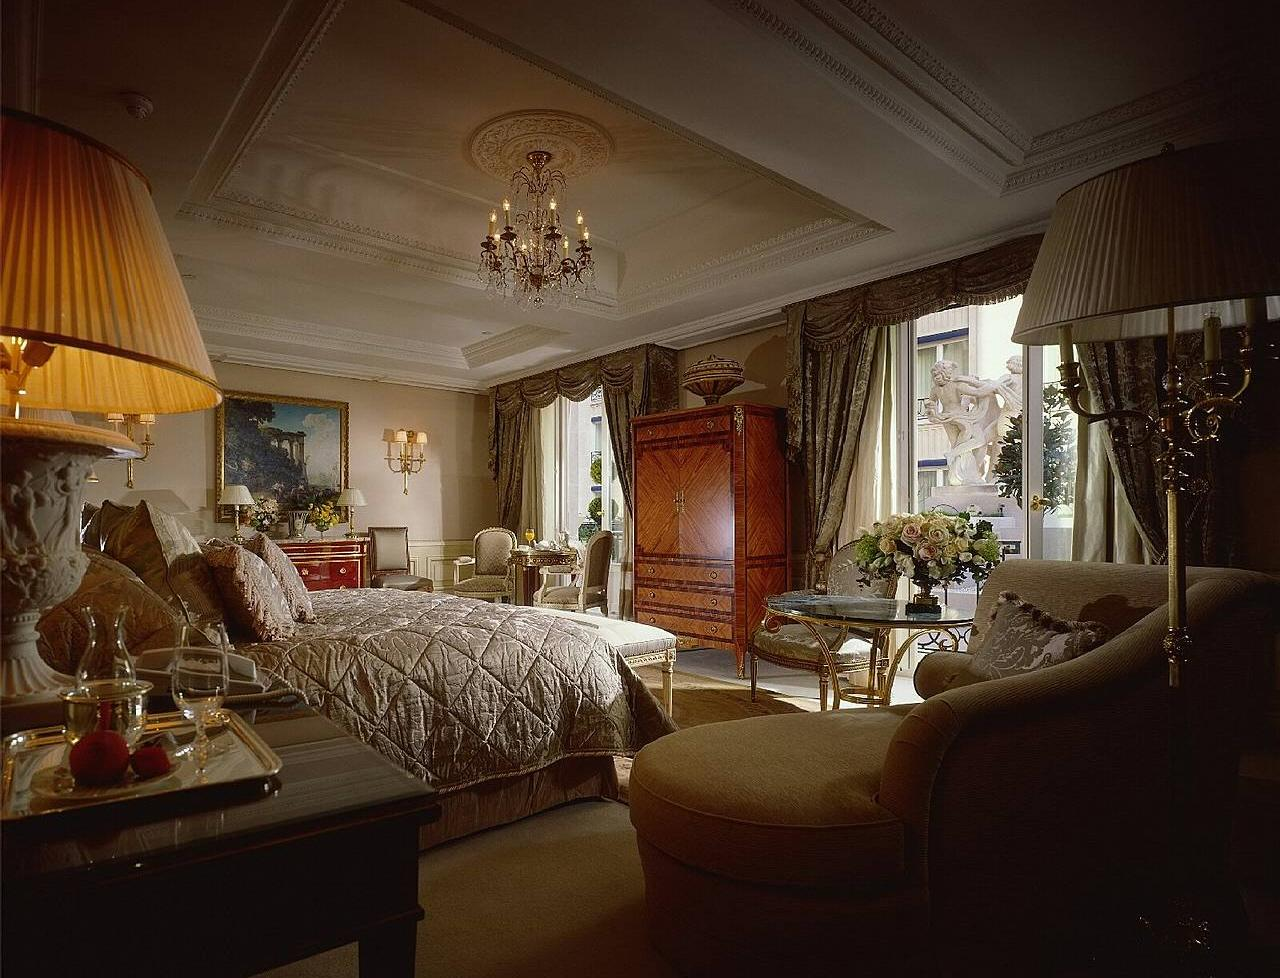 The 15 most expensive hotel suites in the world photos for Expensive bedroom ideas